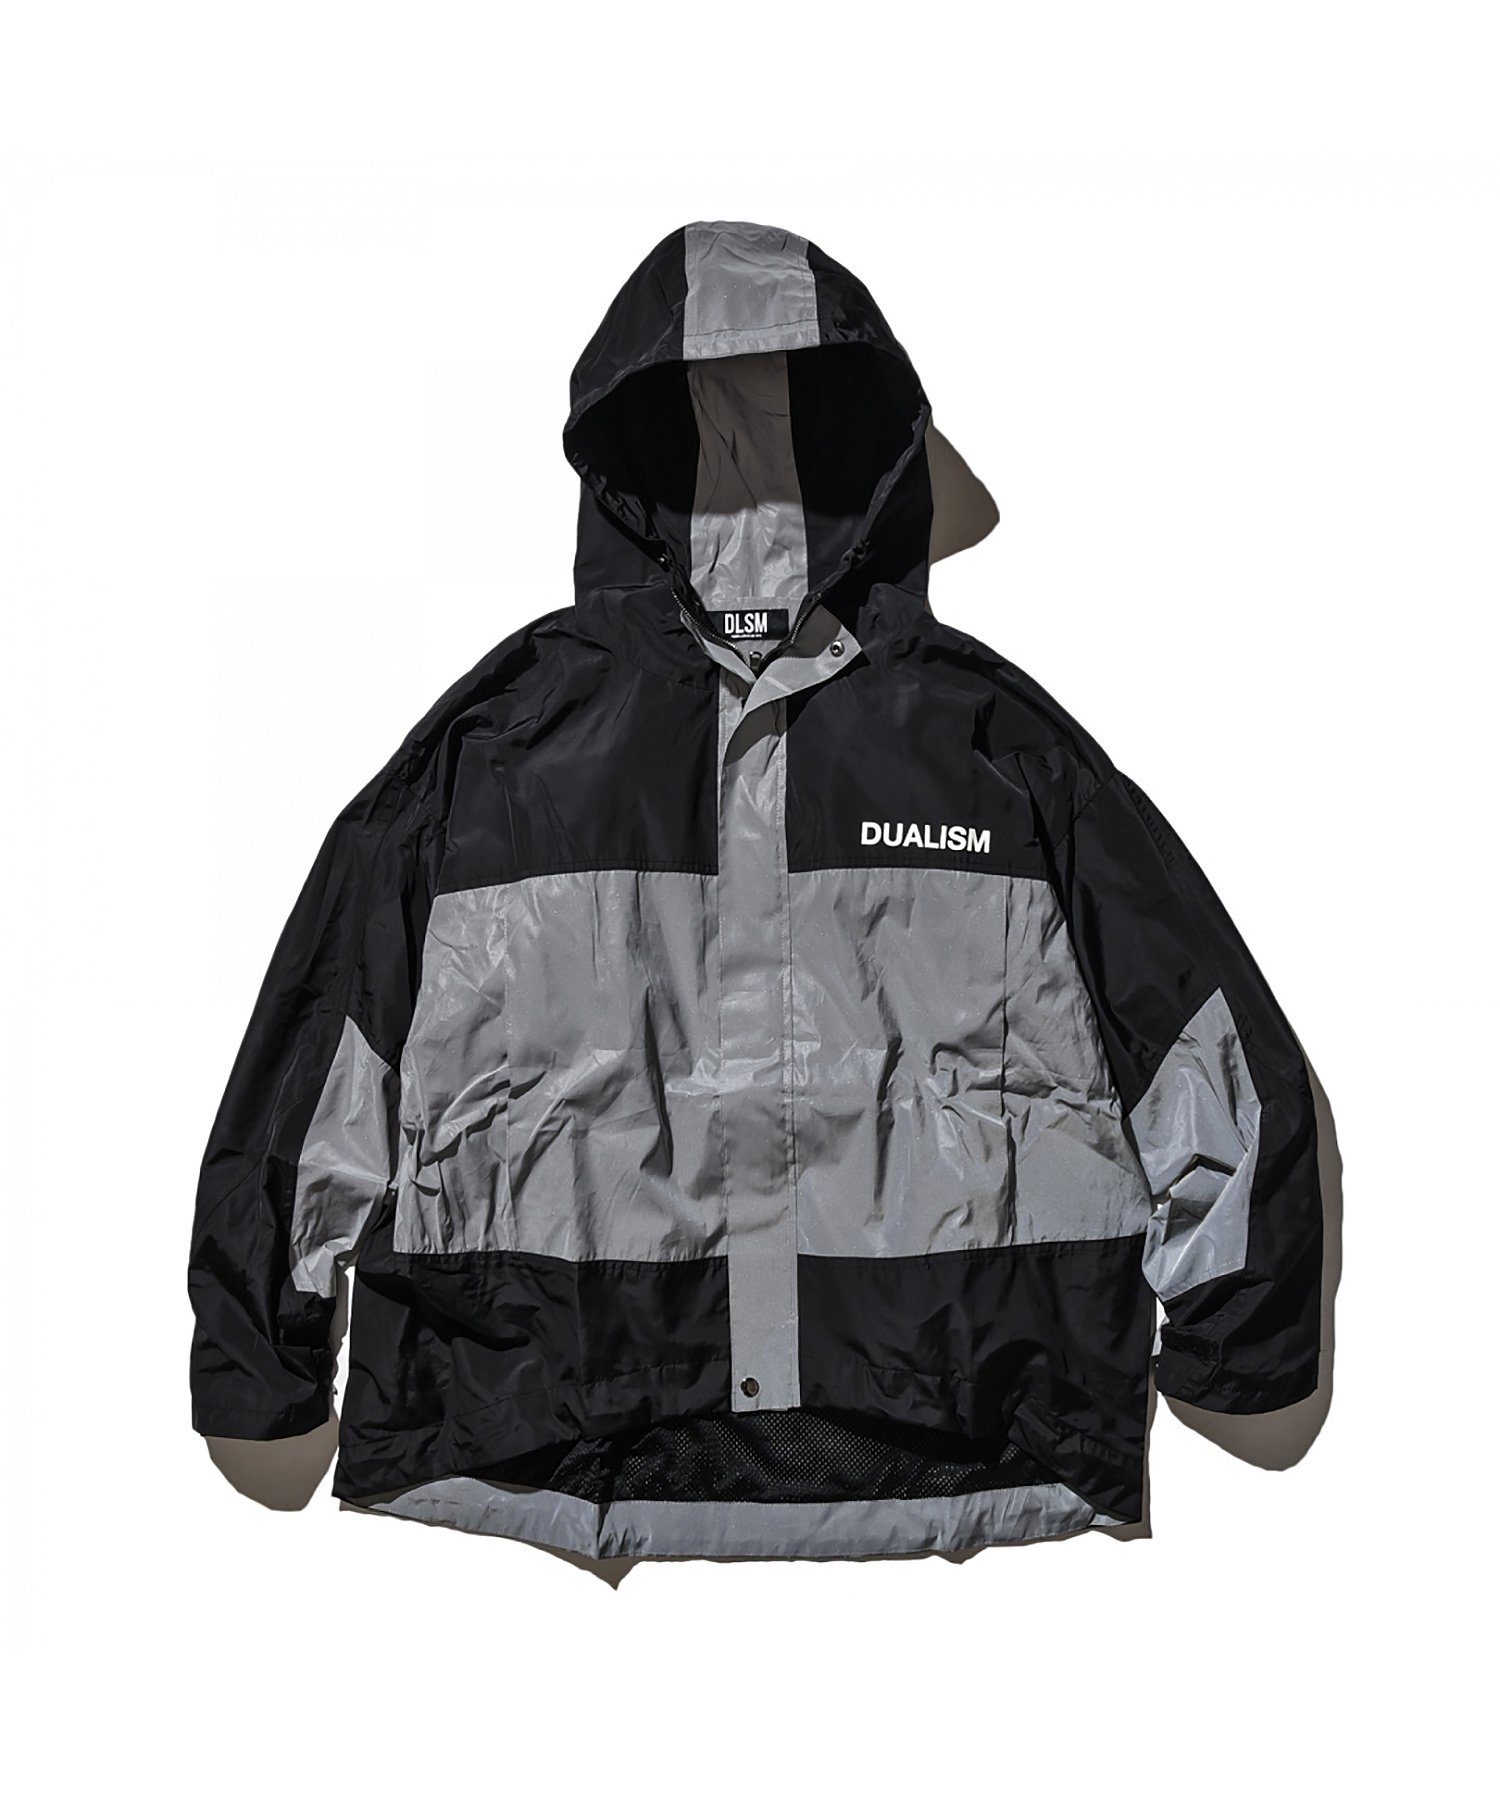 DUALISM REFLECT MOUNTAIN PARKA (SILVER)